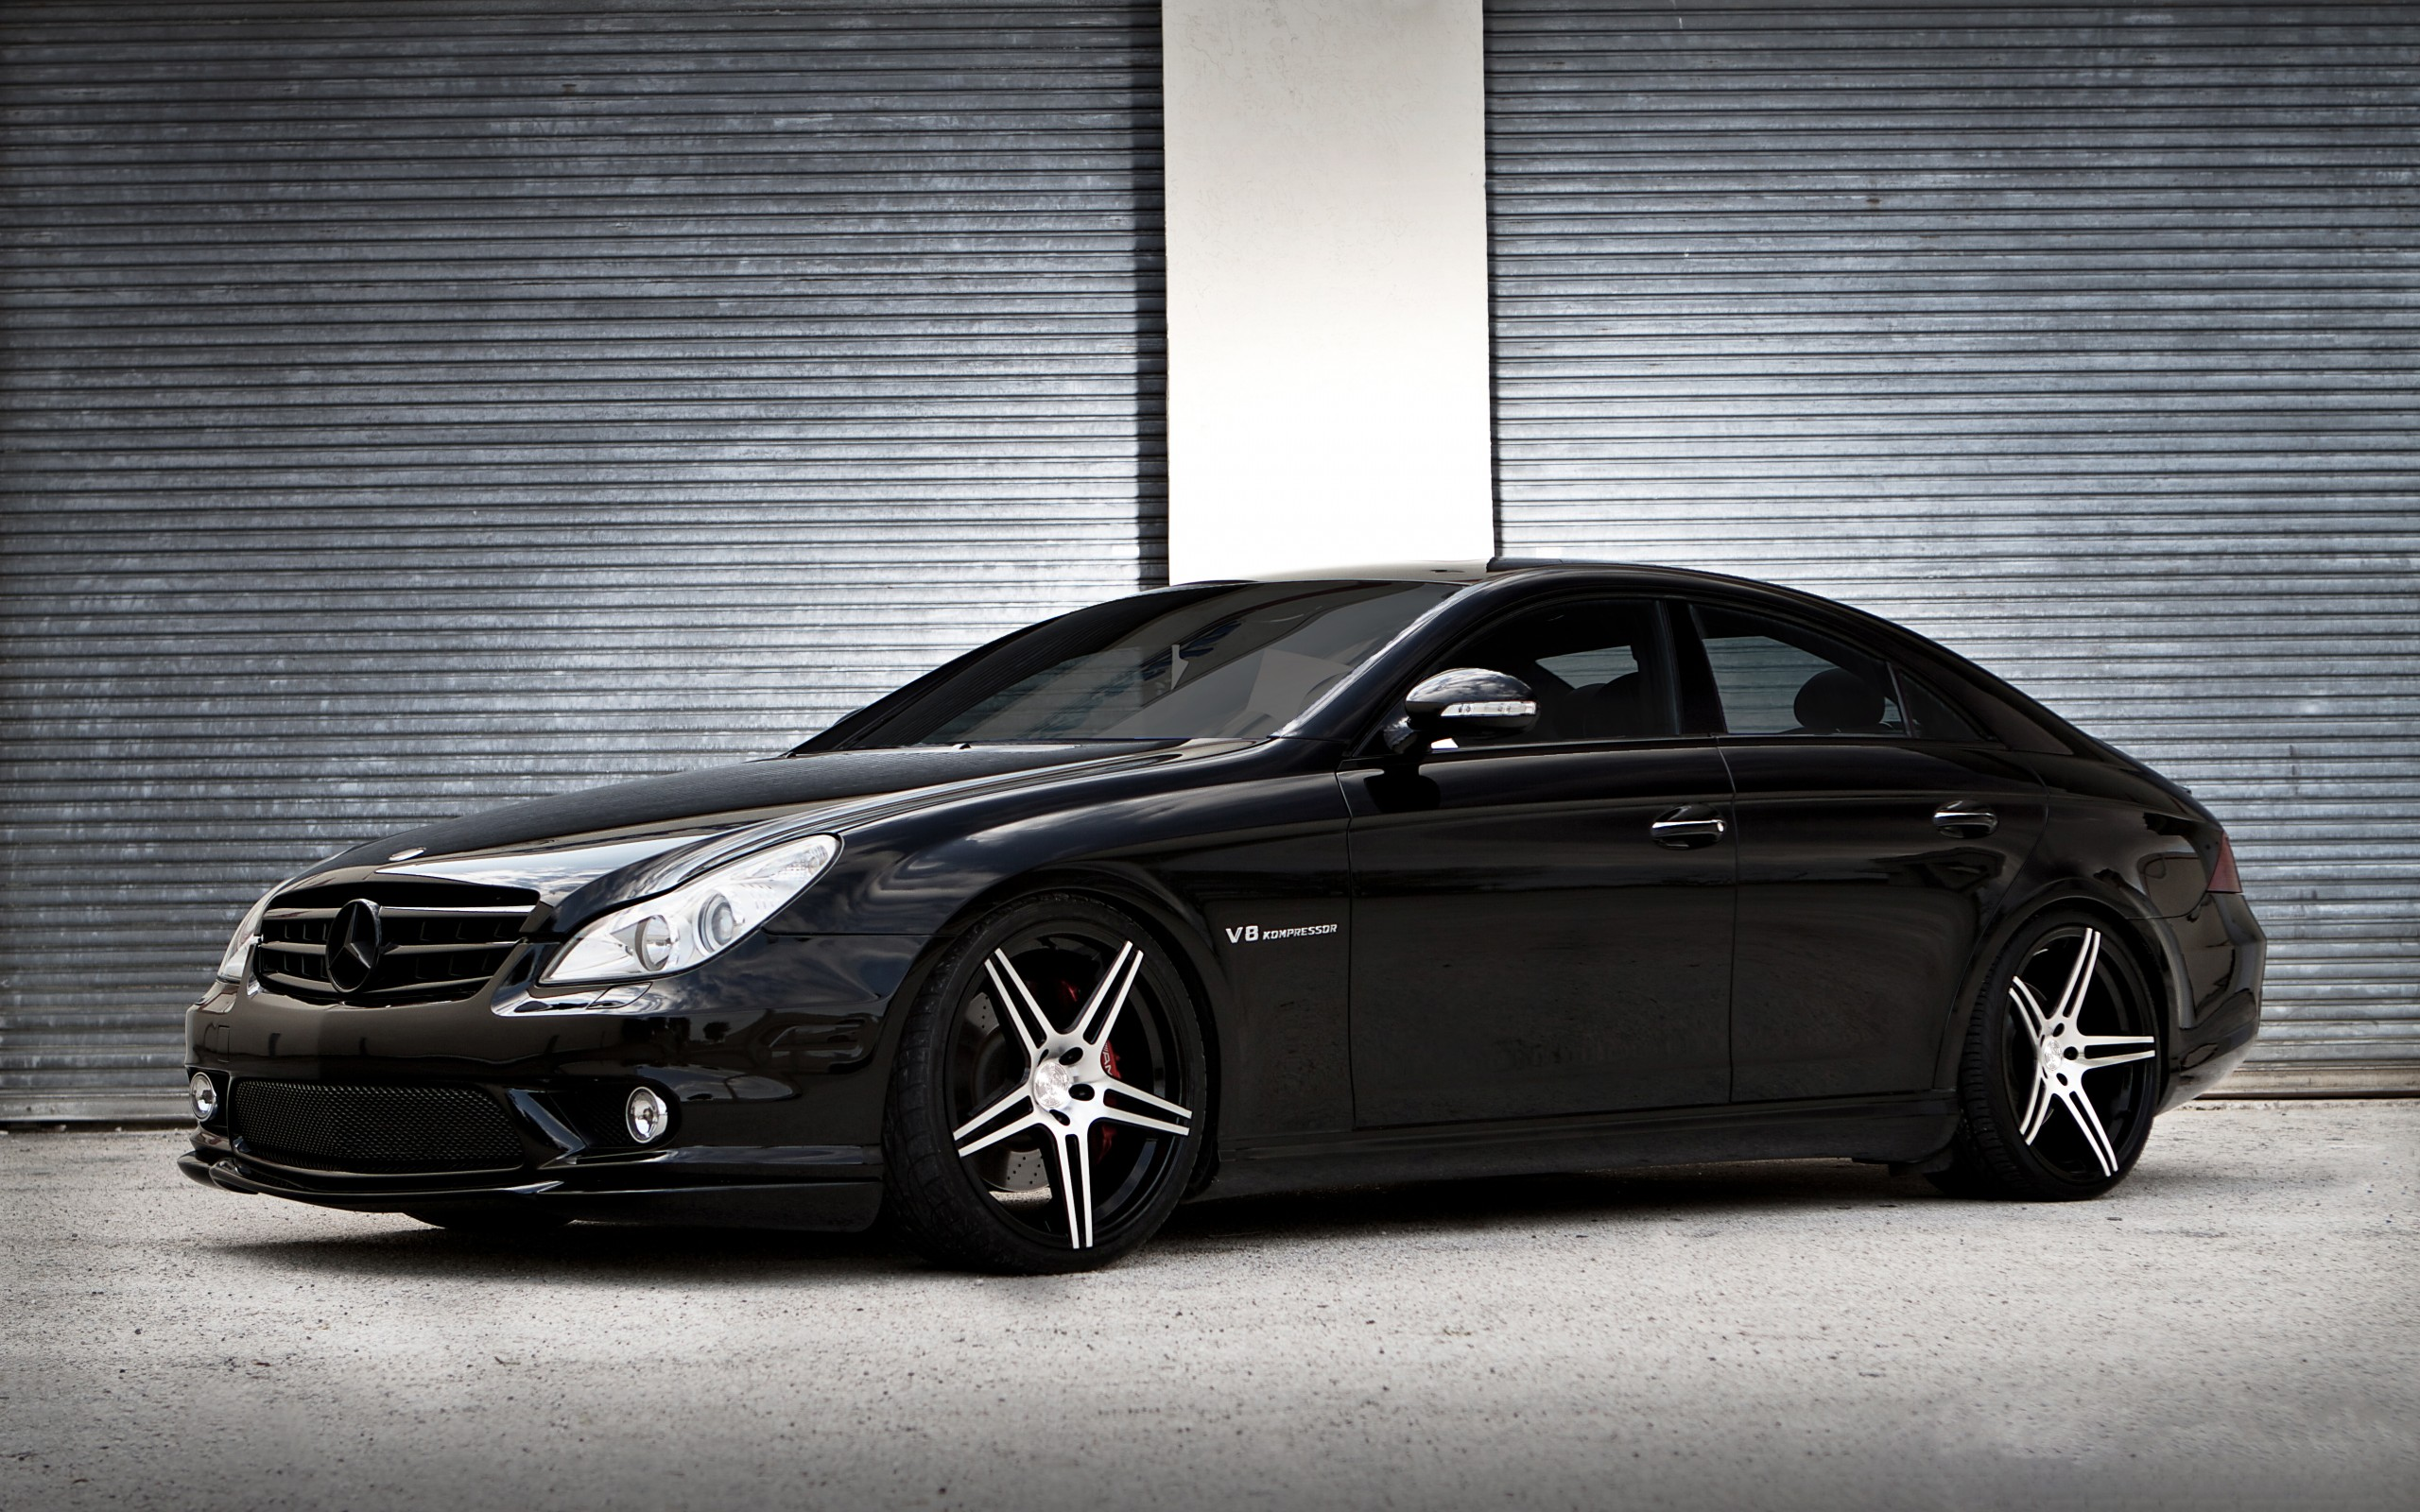 Mercedes benz cls55 amg wallpaper hd car wallpapers id for Mercedes benz v8 amg